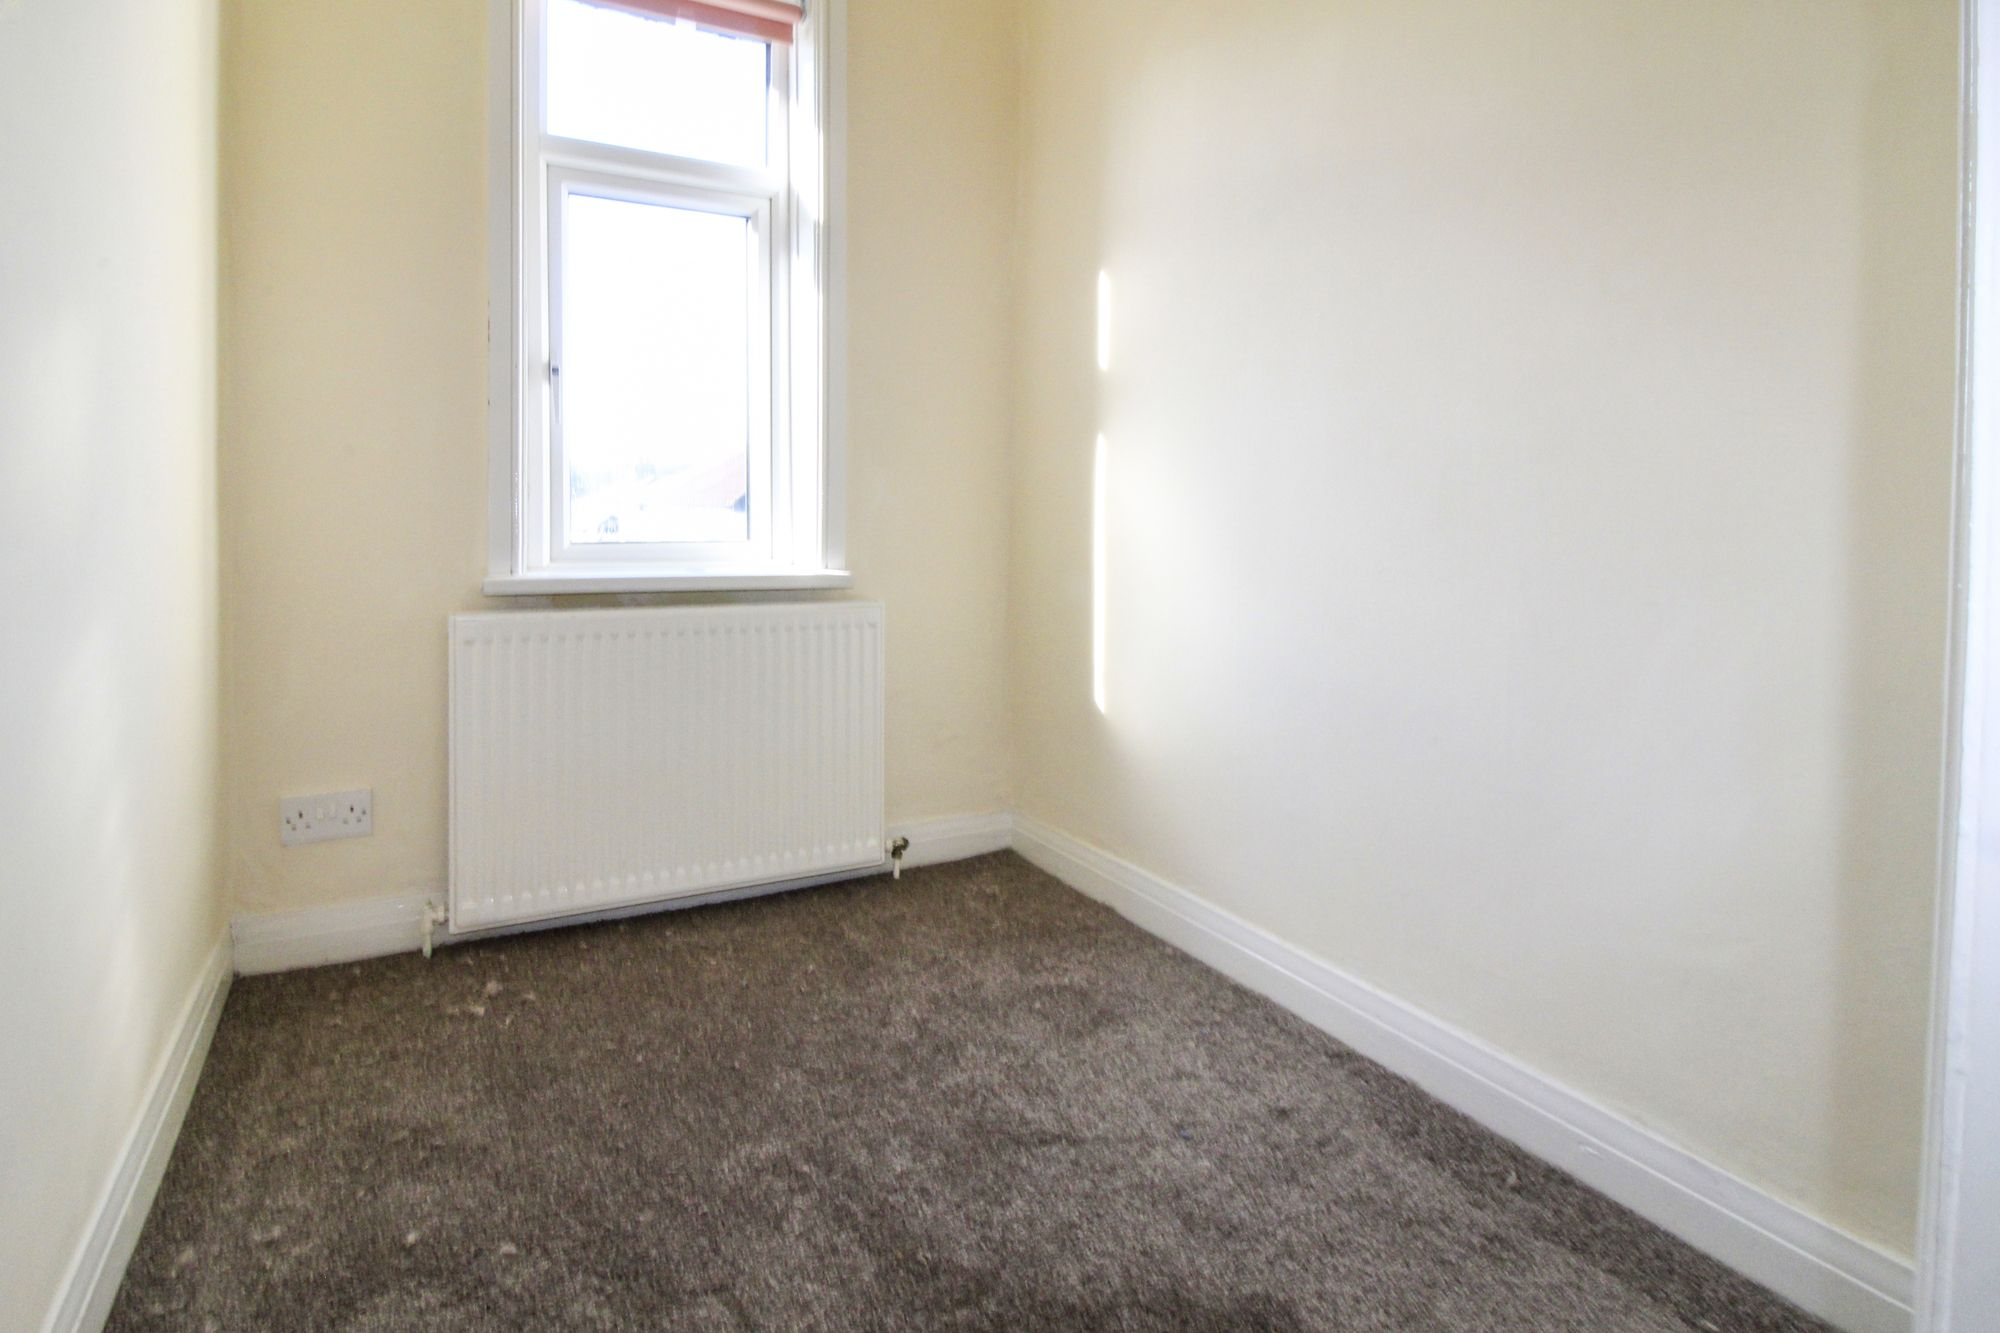 3 bedroom semi-detached house To Let in Shipley - Bedroom 3